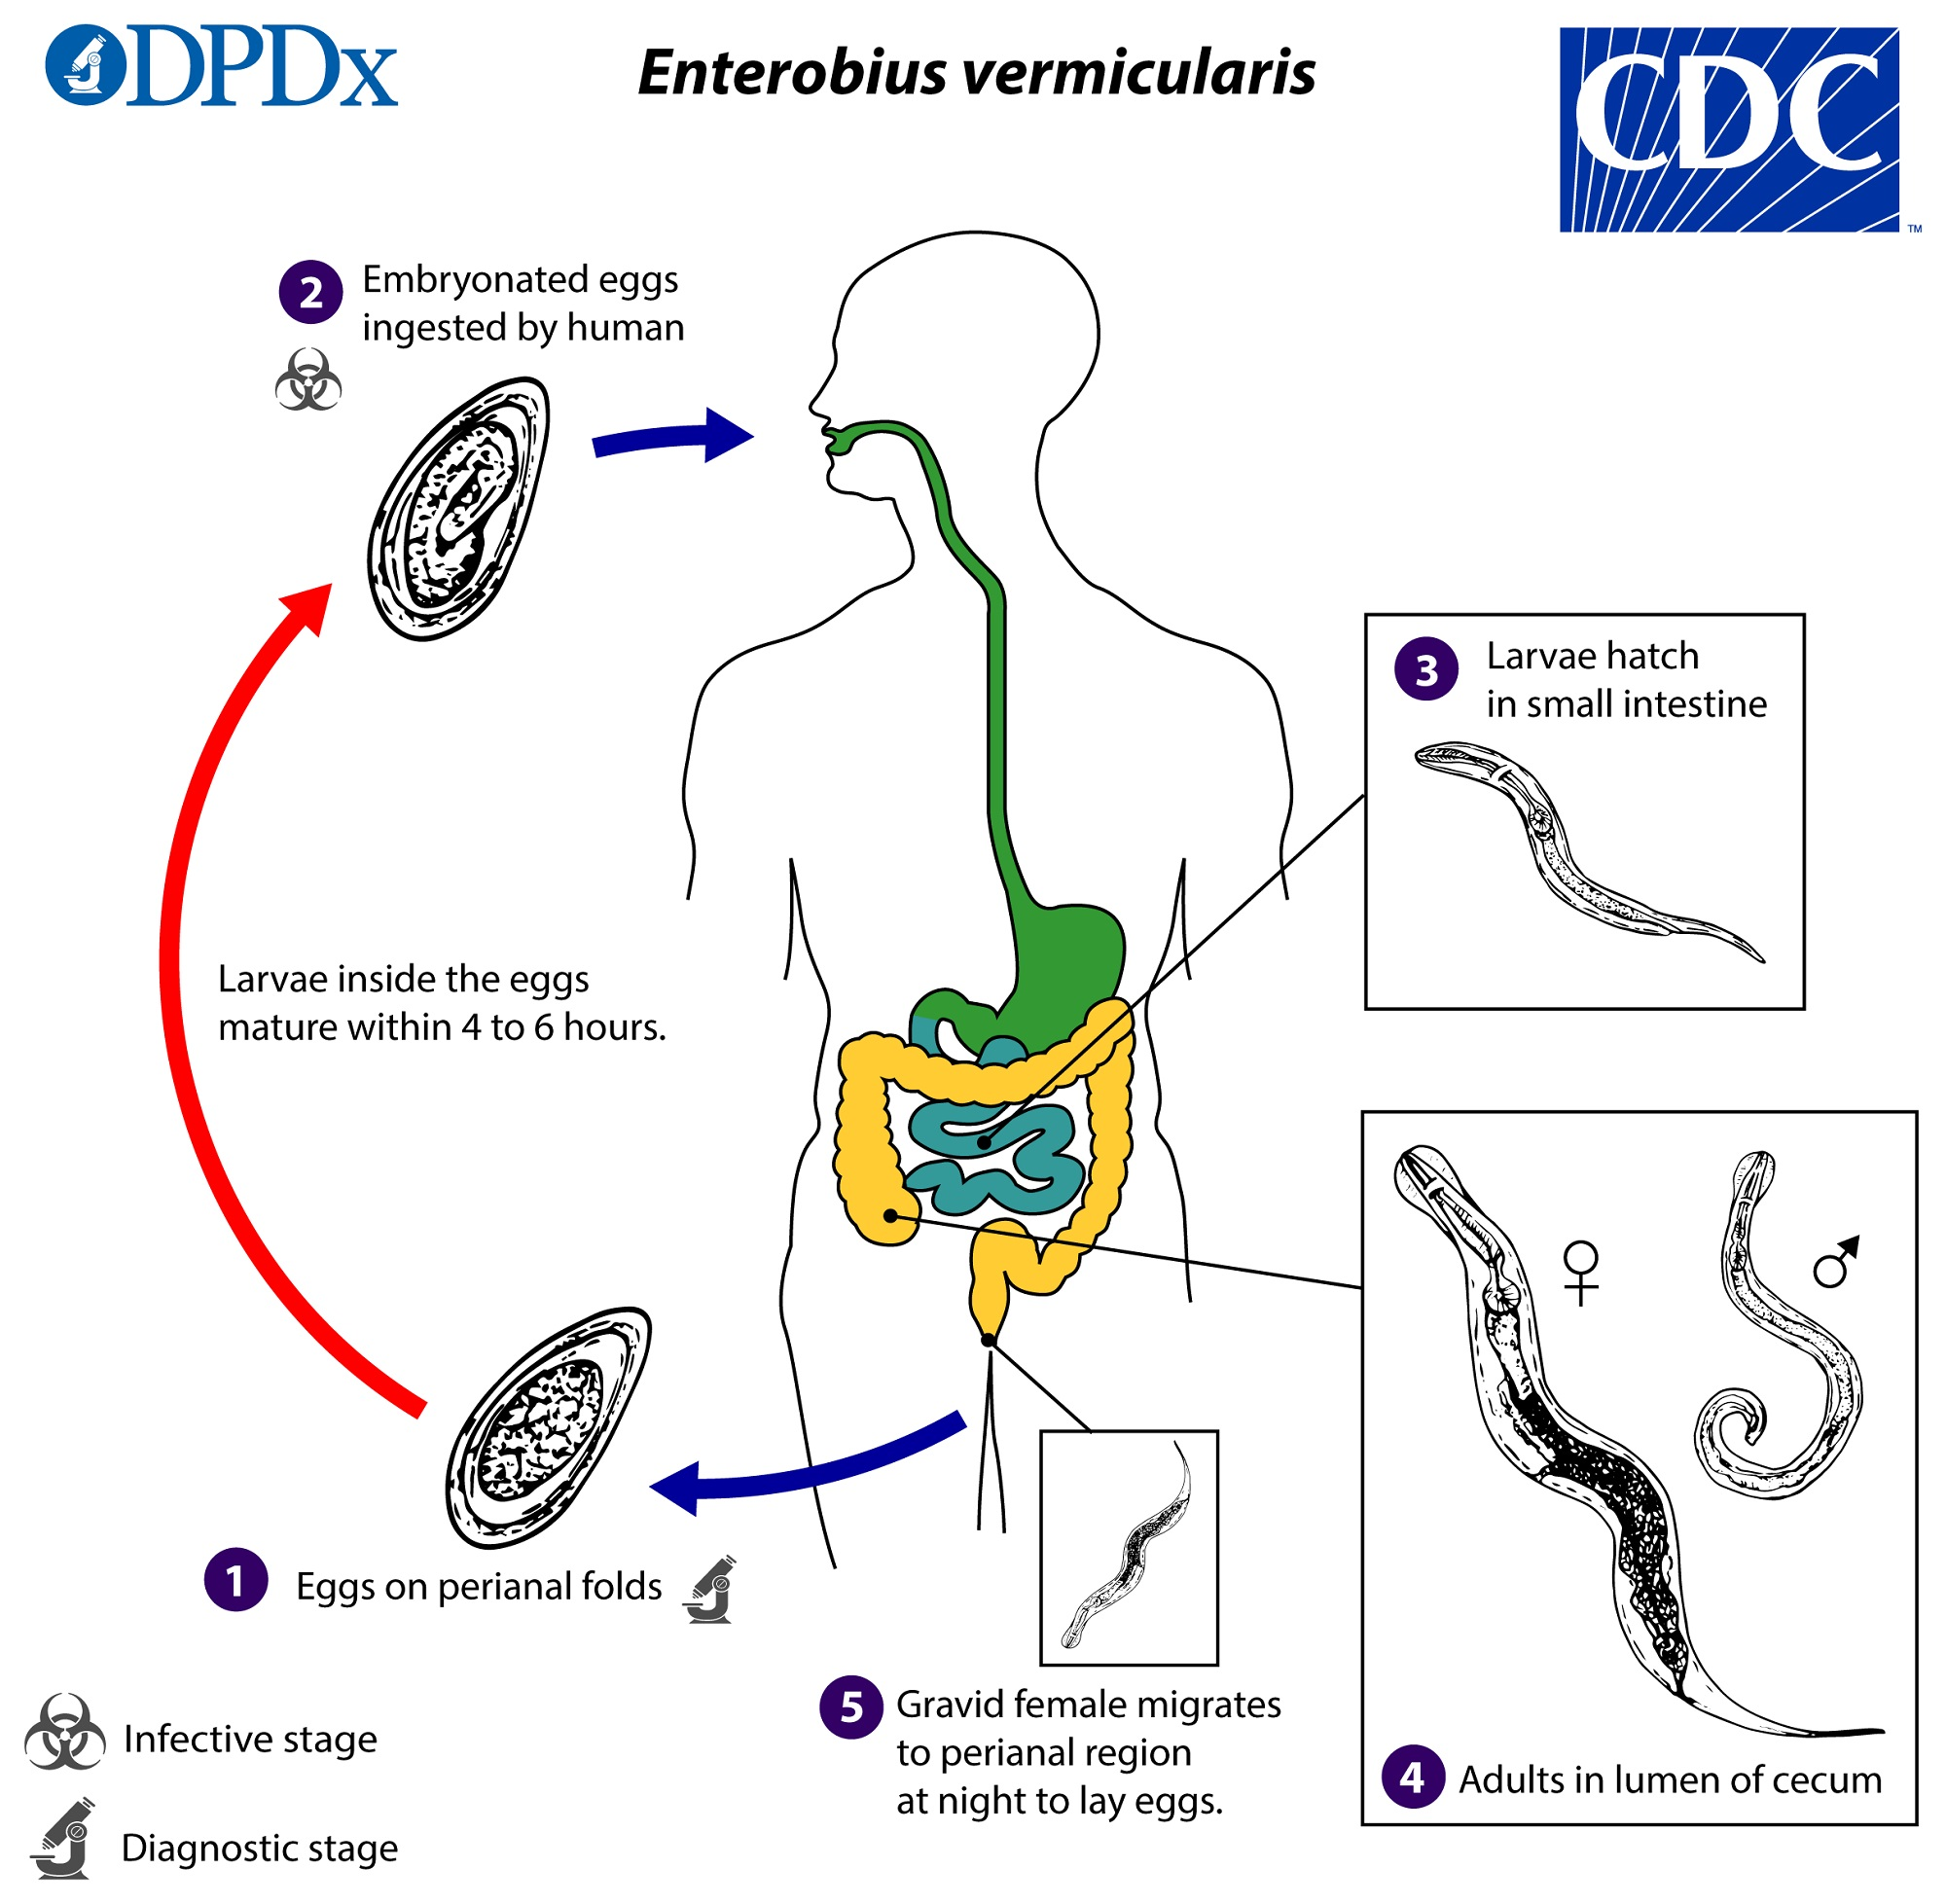 Treatment for oxyuris vermicularis